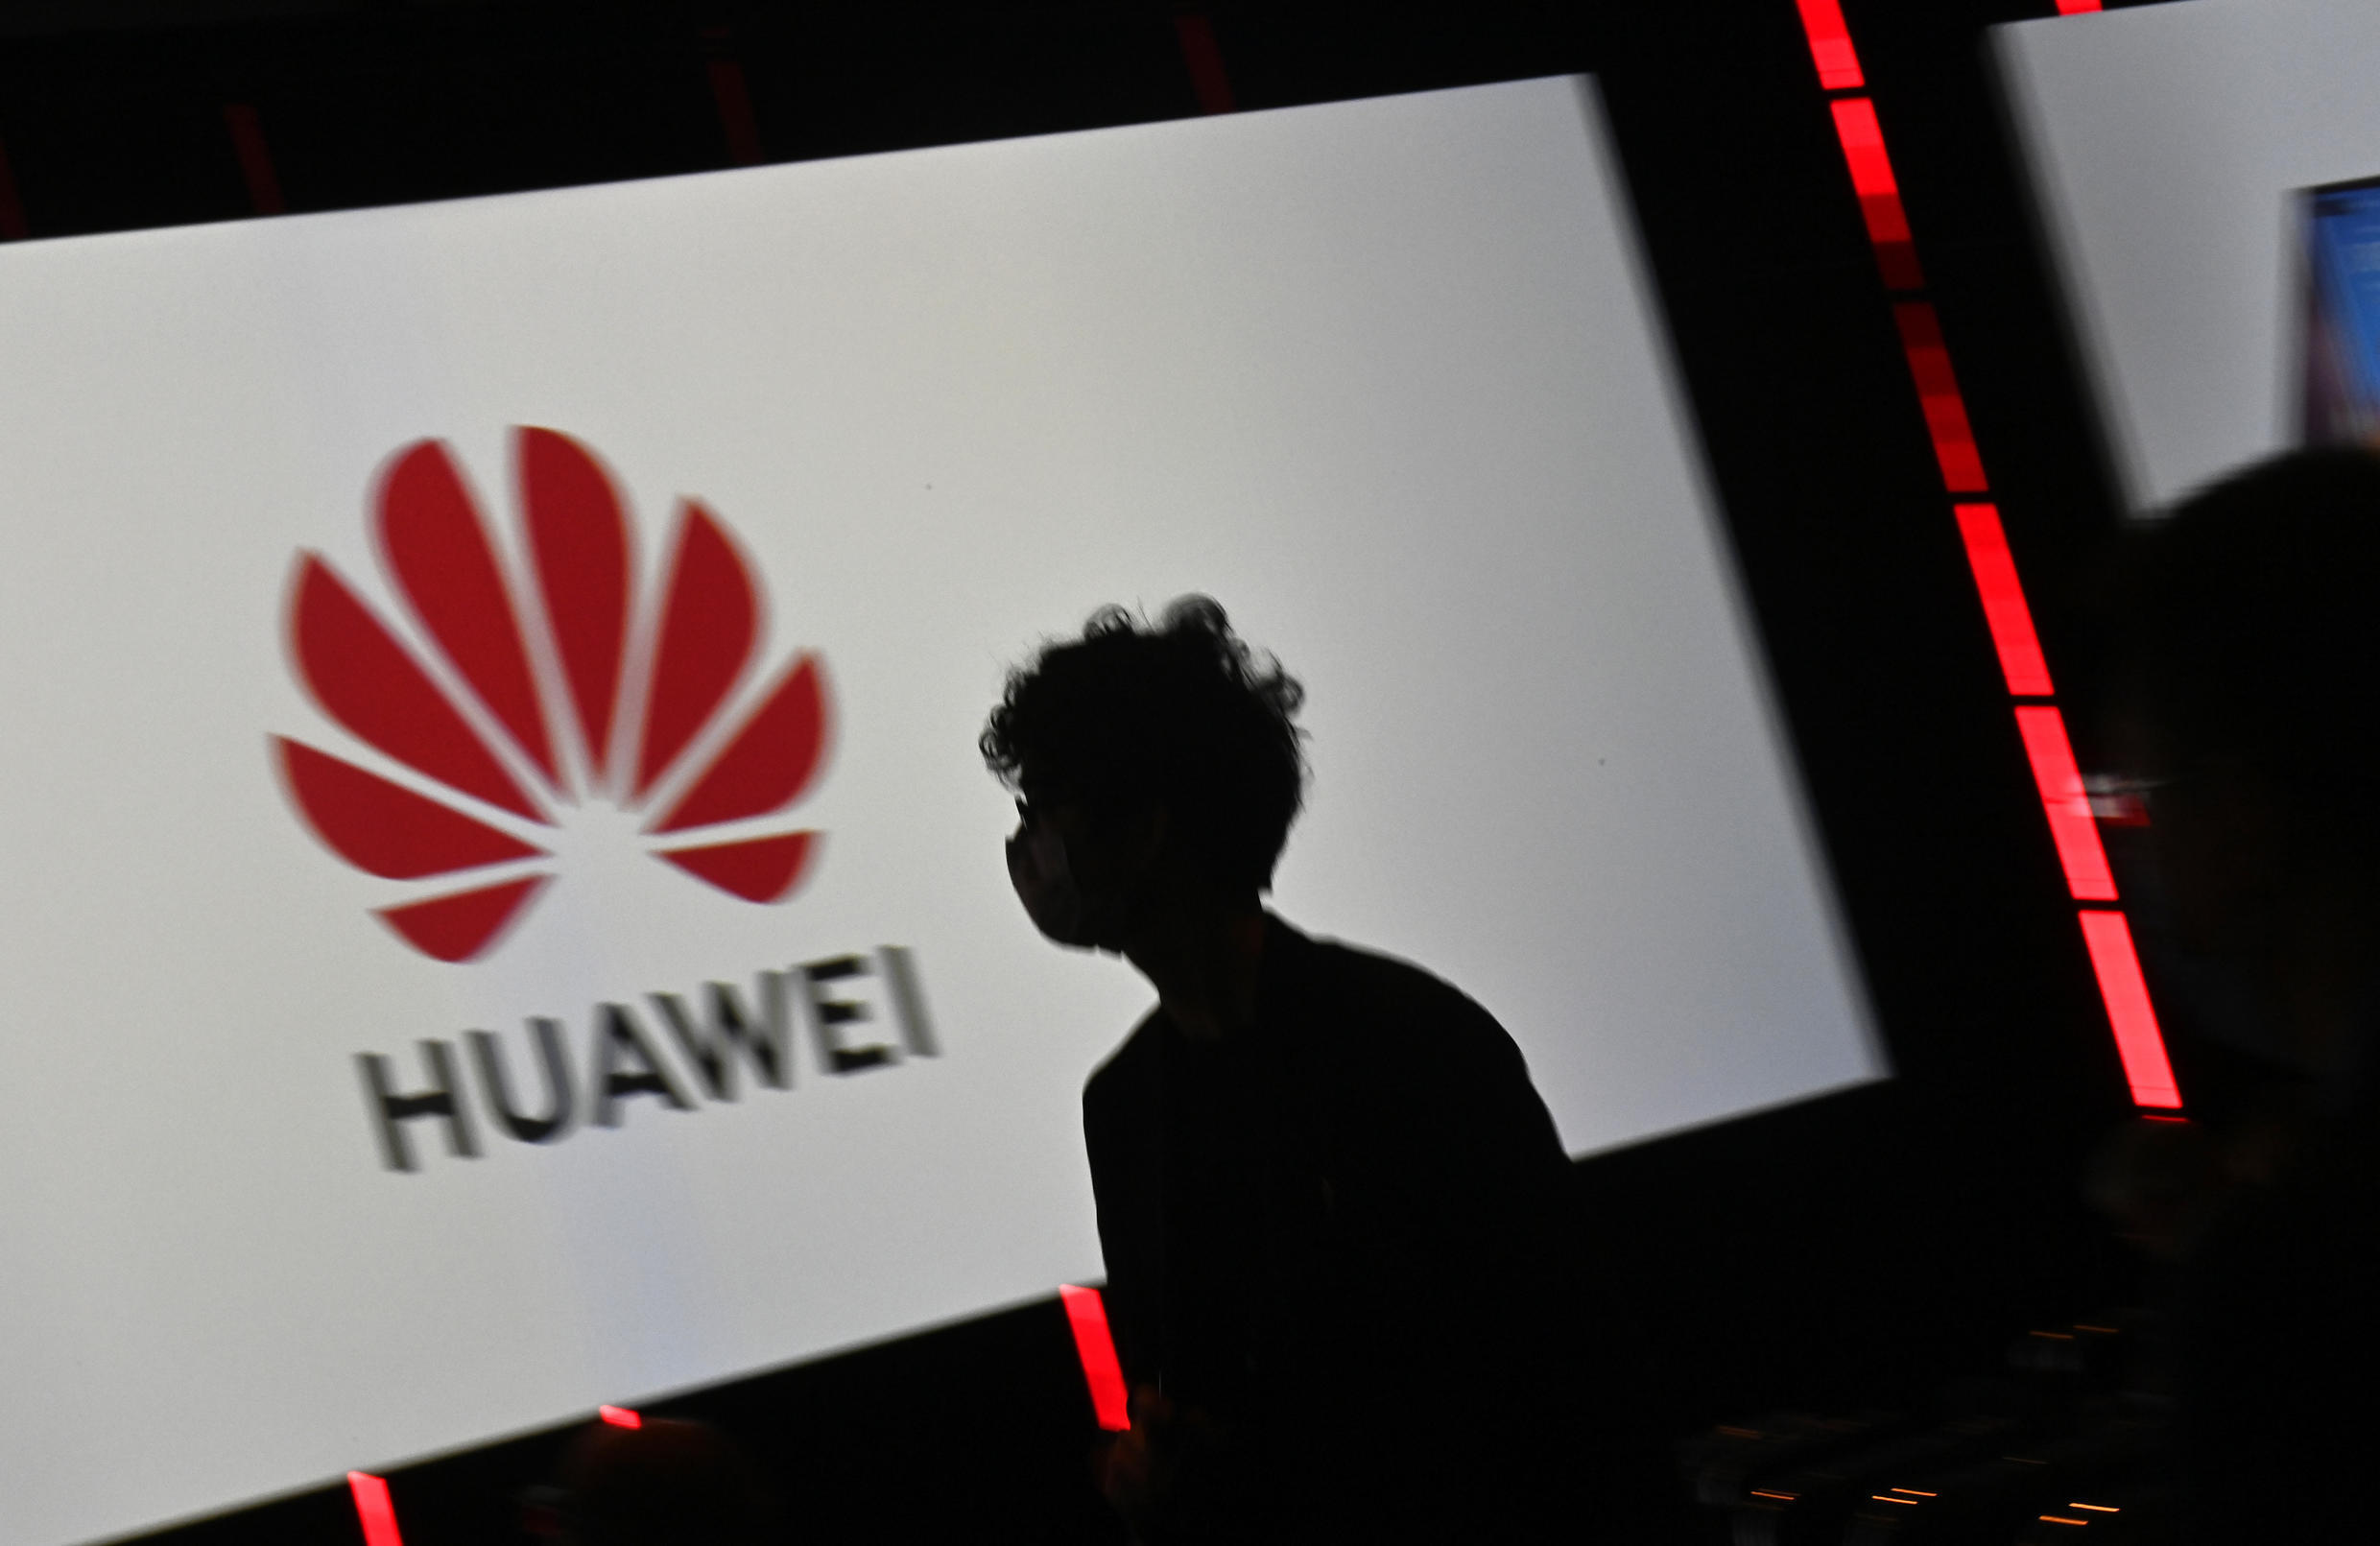 Huawei and TikTok parent ByteDance have been caught in the middle of the technology battle between China and the United States